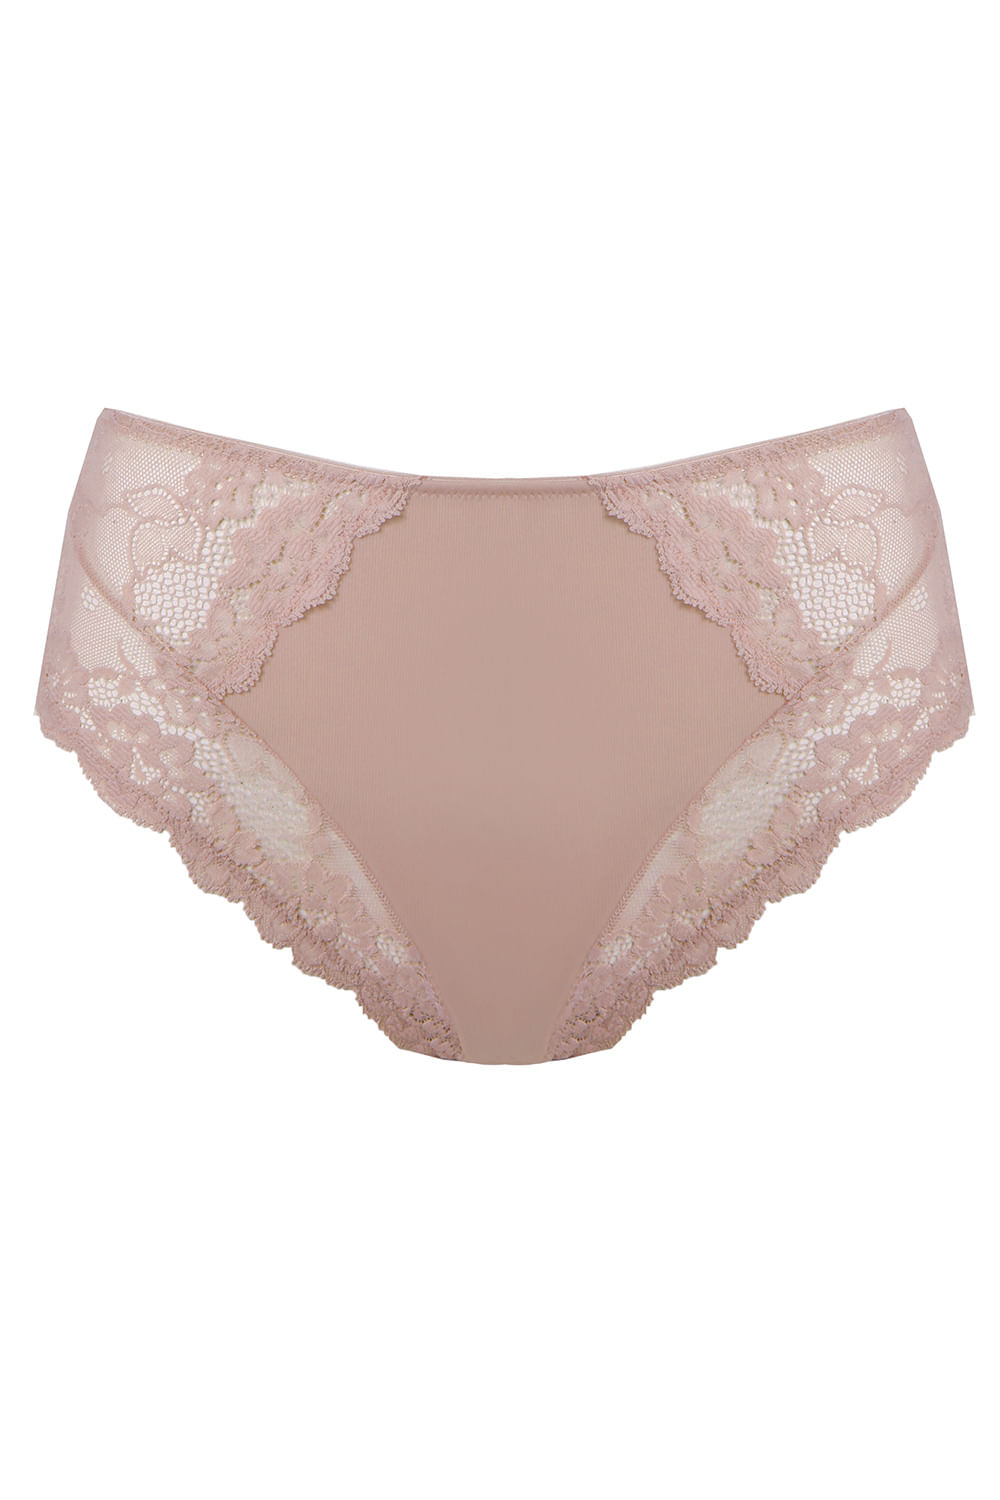 c07390be9 Calcinha Calça Cintura Alta Com Renda - Lace Power - 324.94 - Base